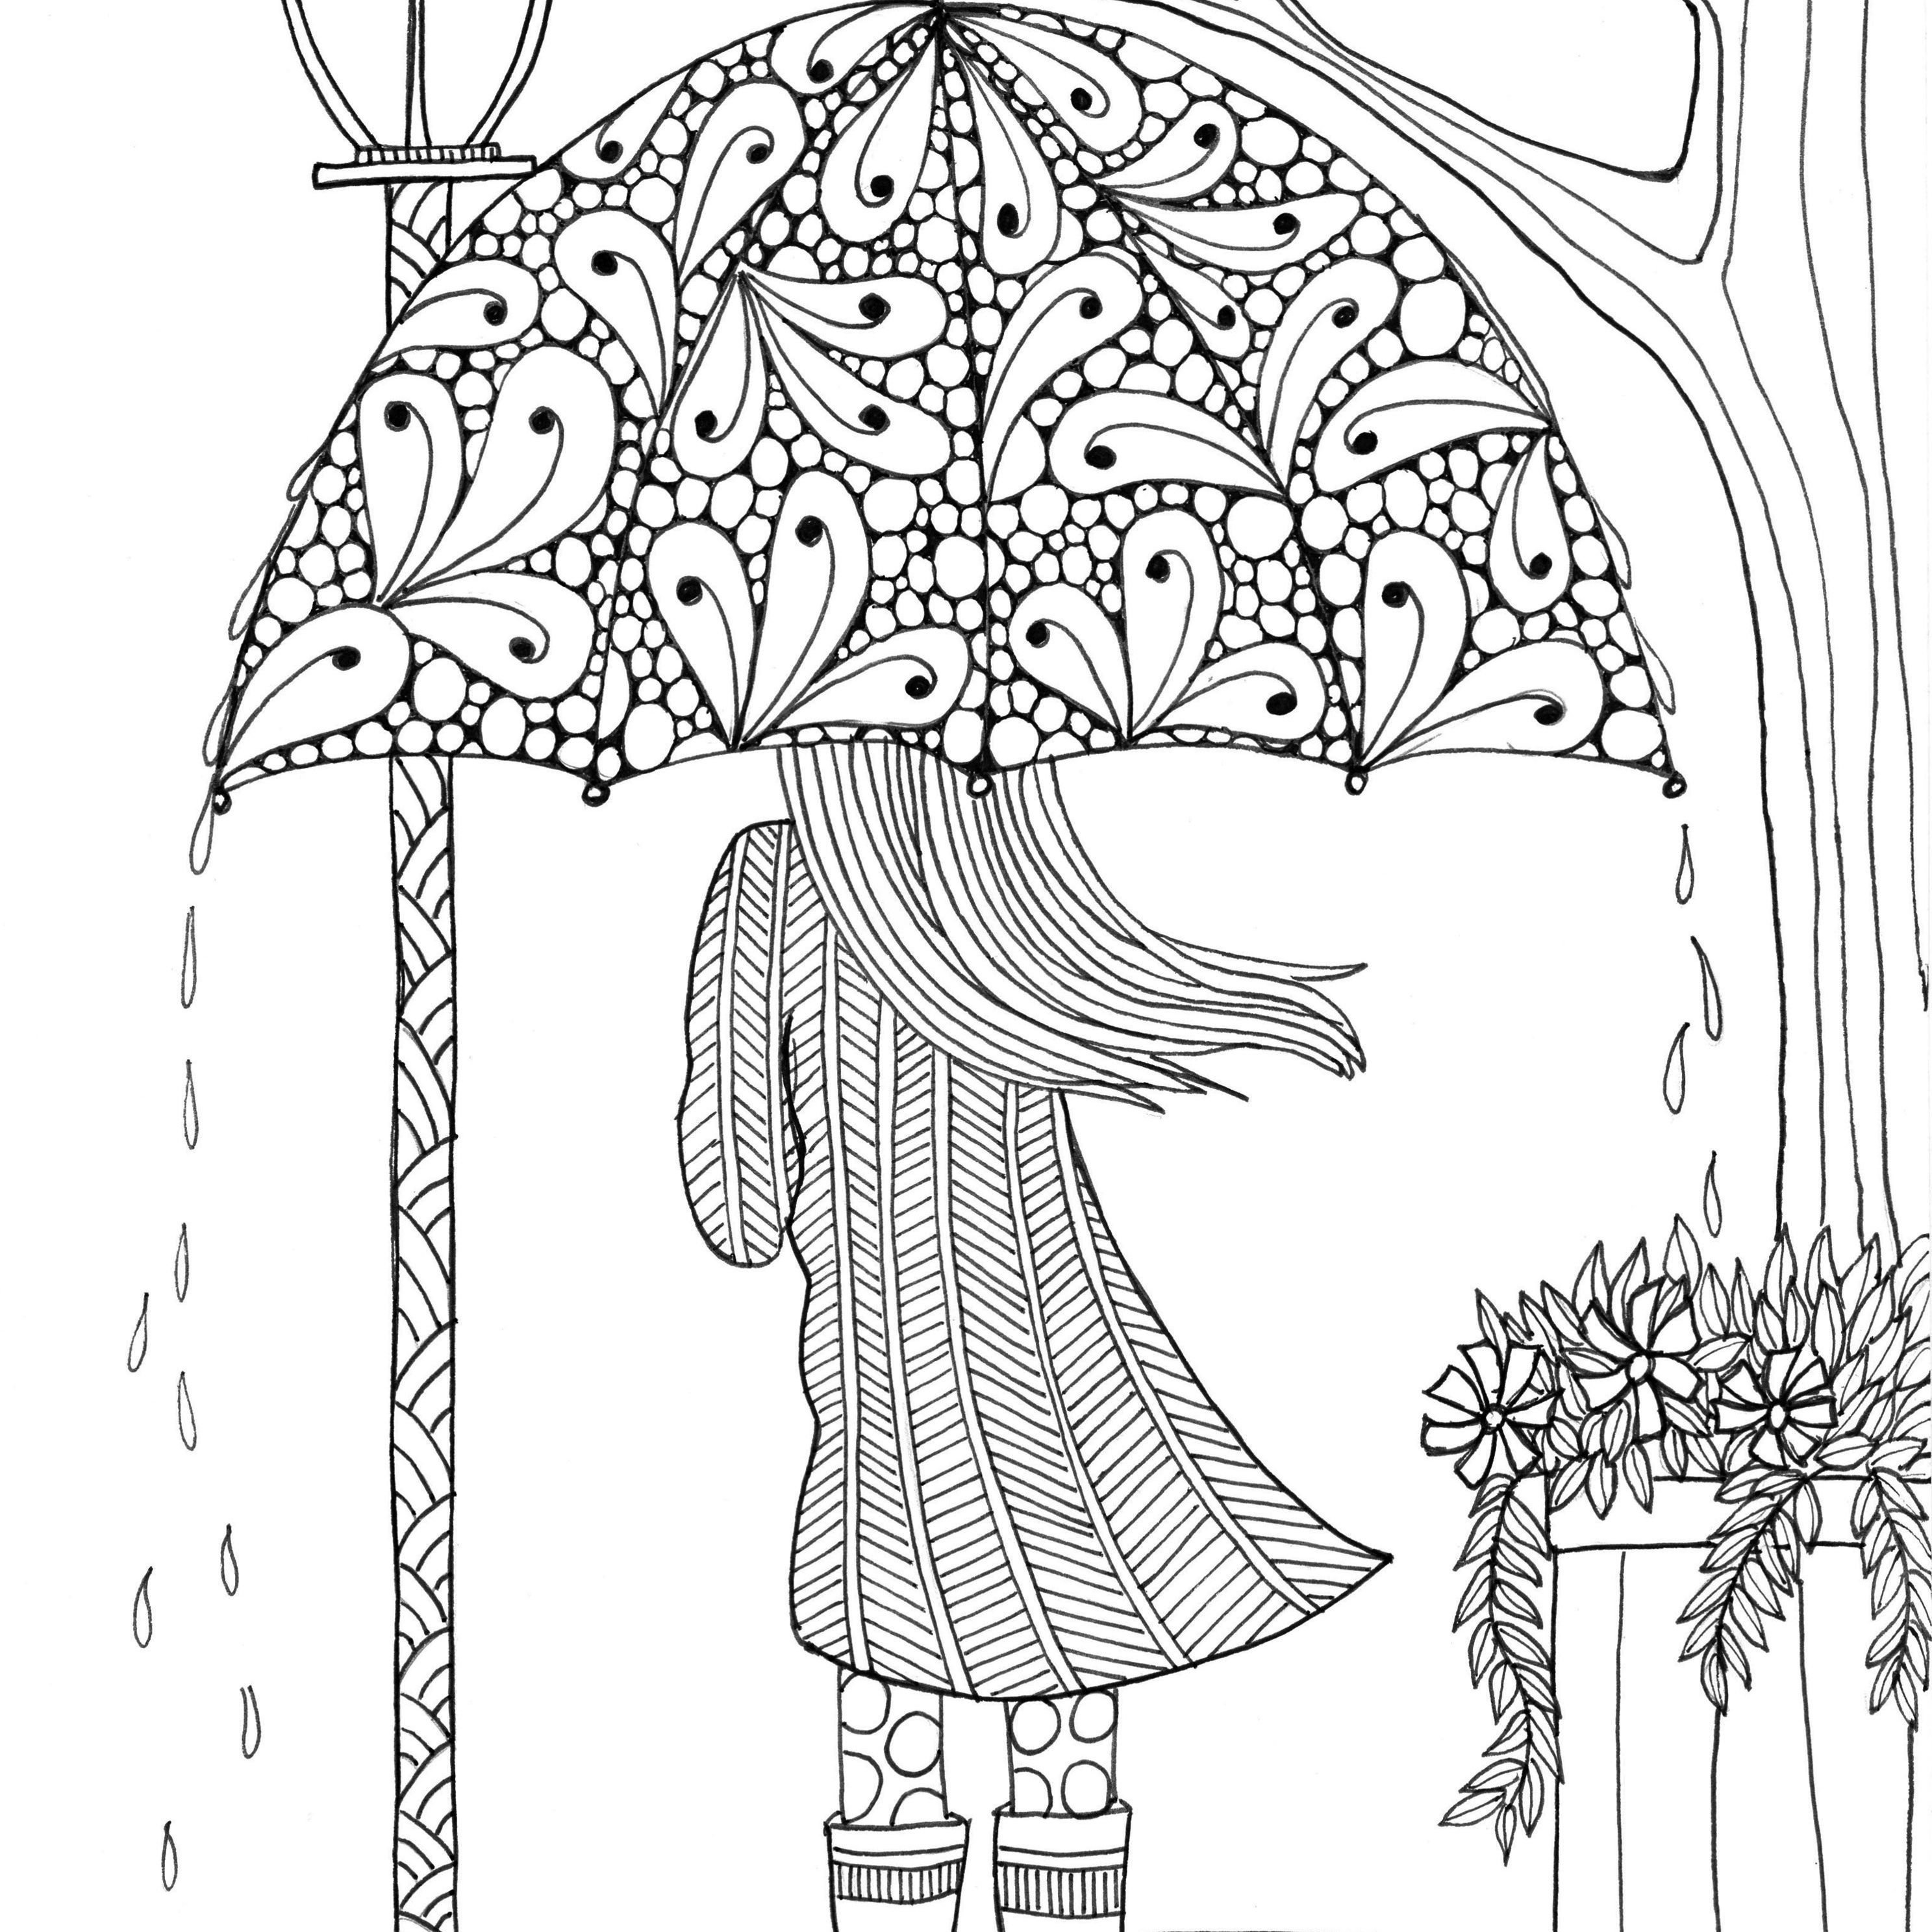 Free, Printable Coloring Pages For Adults - Free Printable Summer Coloring Pages For Adults